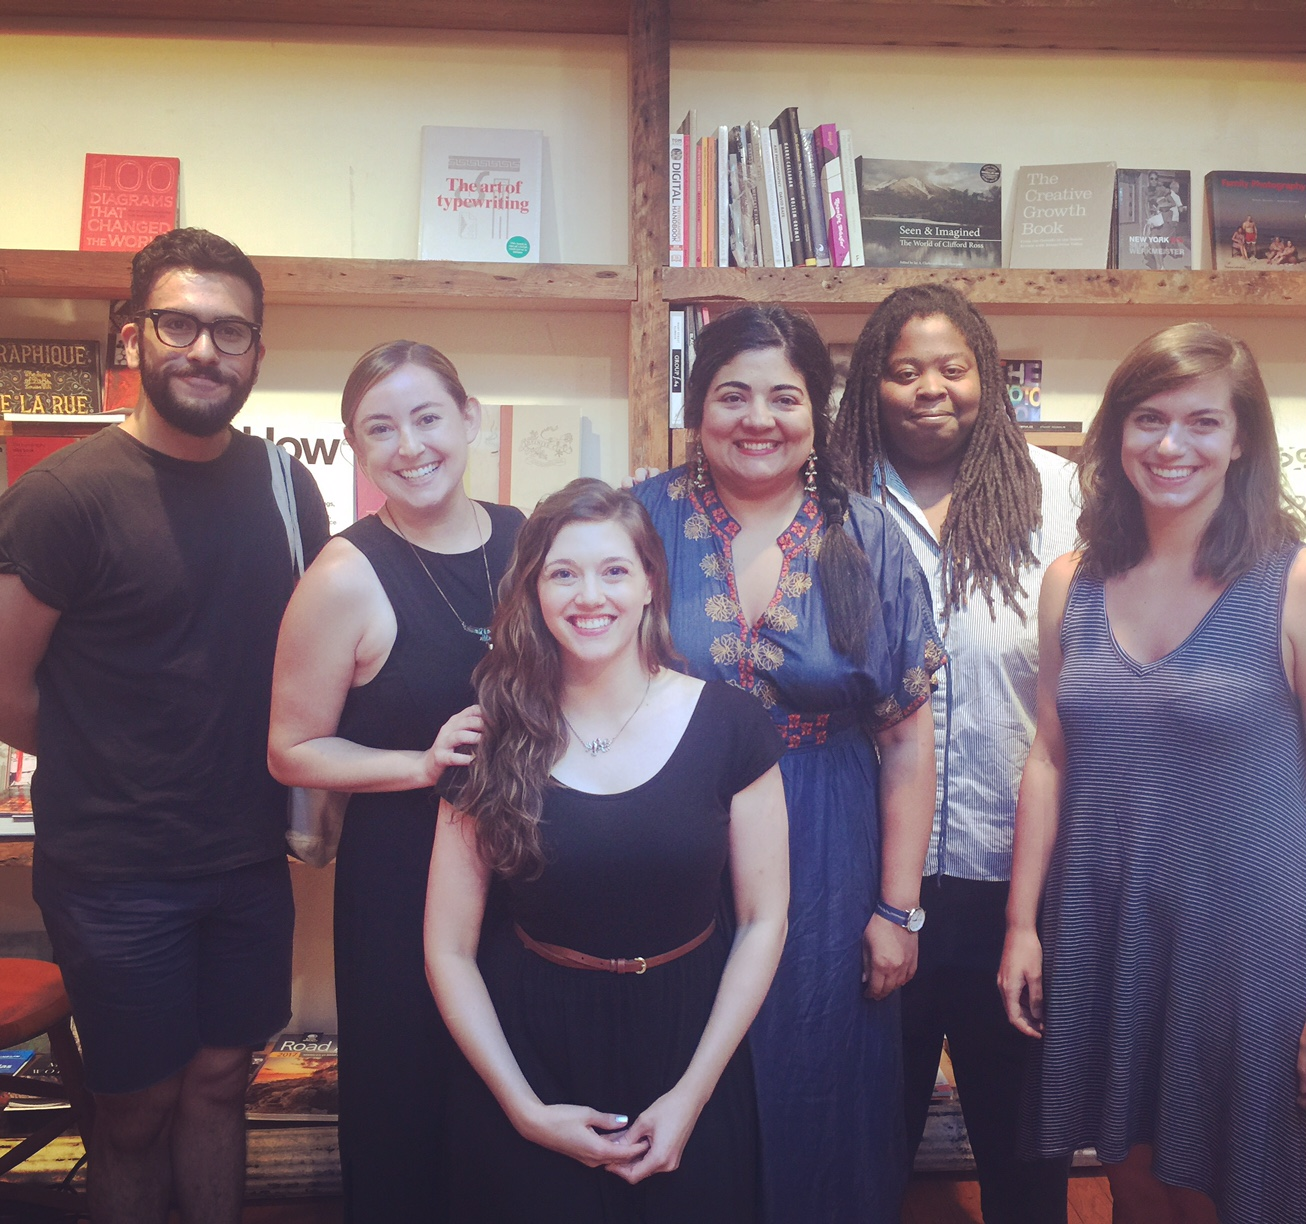 From L to R: Francisco Marquez, Leigh Stein, Alisson Wood, Swati Khurana, Sasha Smith, & Ashley Lopez. At BookCourt, August 28th, 2016